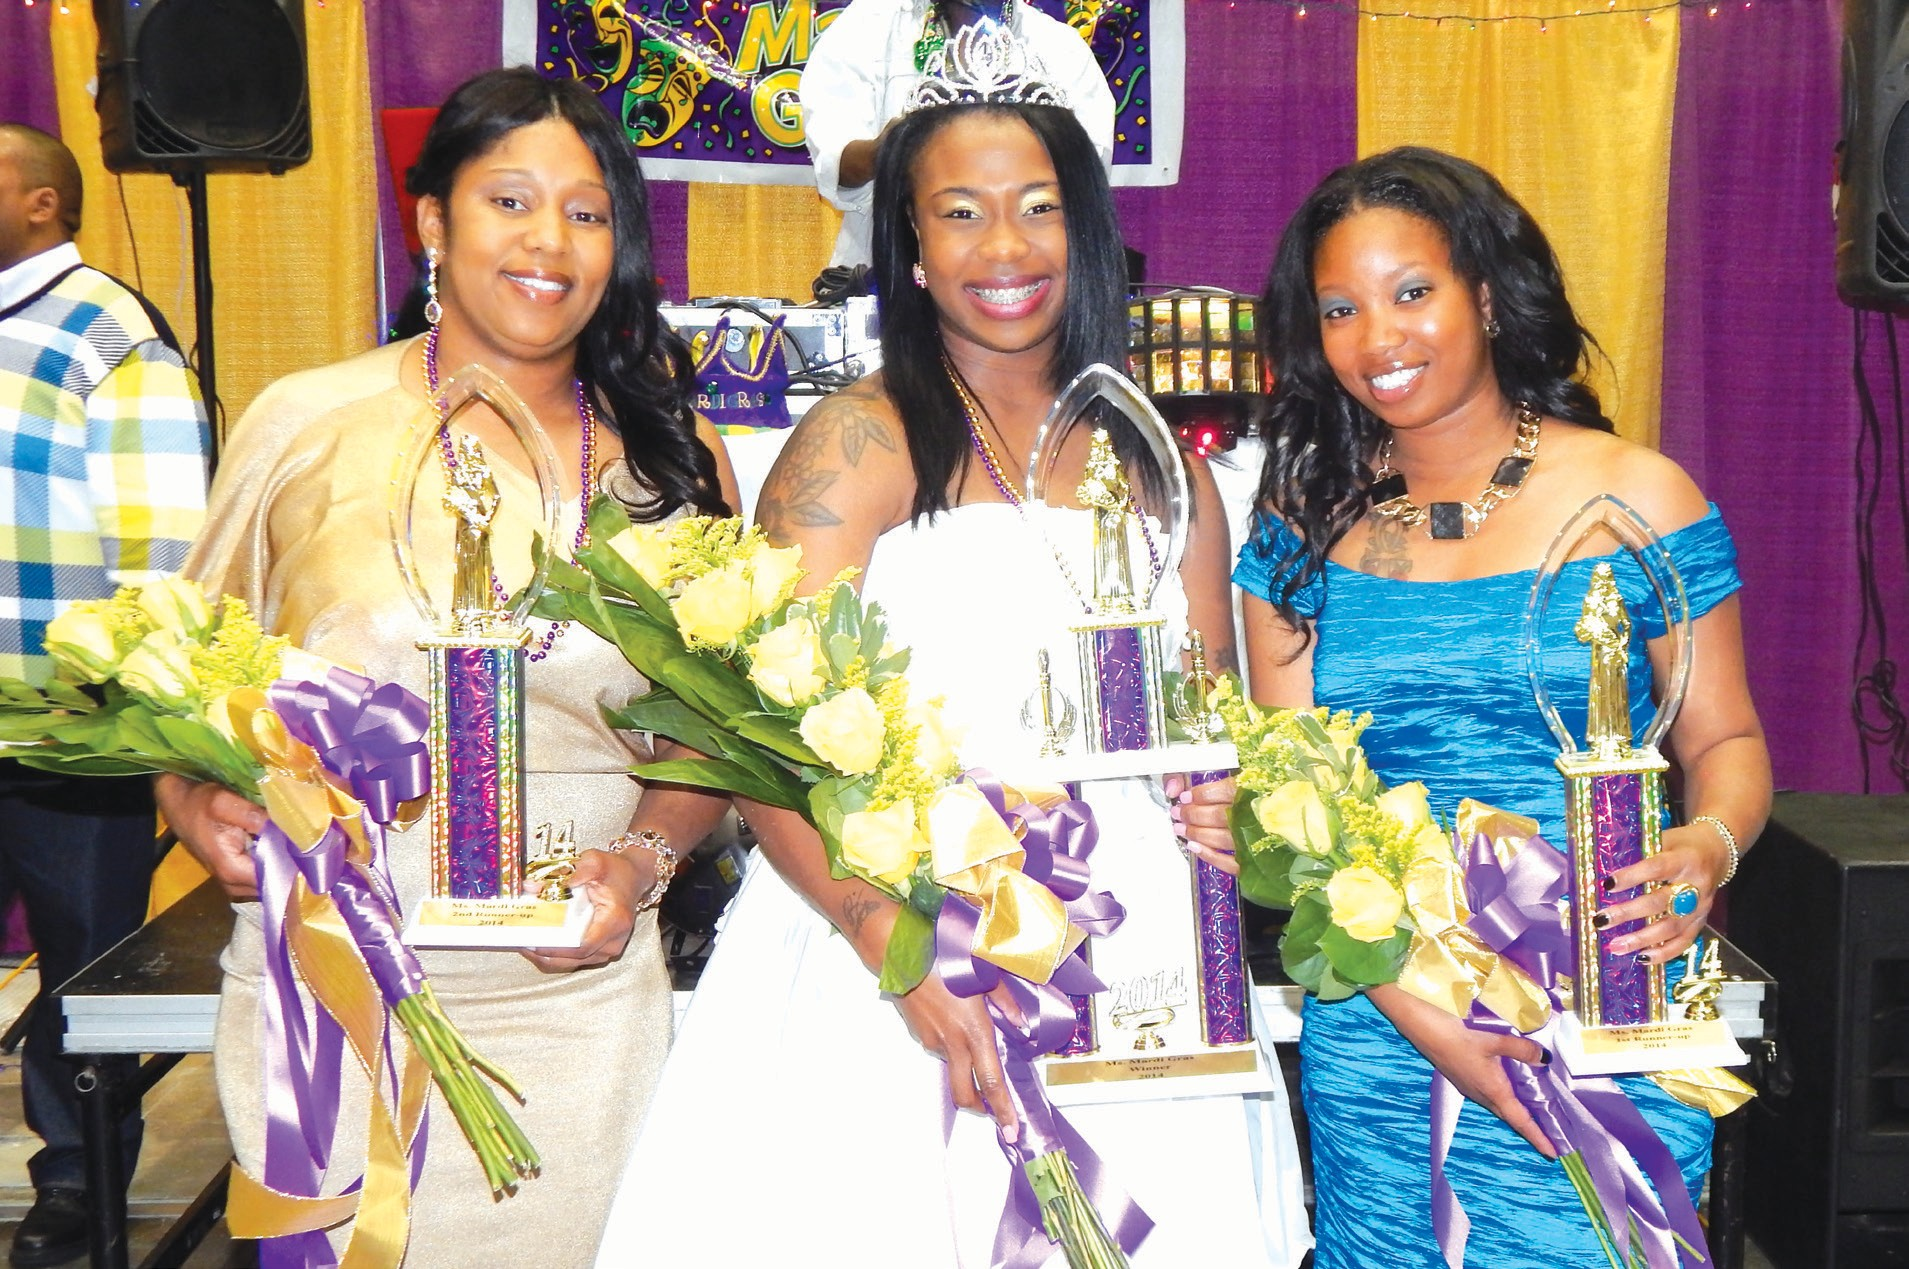 (L-R) Marquita Chambers, first runner up; Rakeila Manning, Miss Mardi Gras 2014; and Latoya Tierria Minor, second runner up